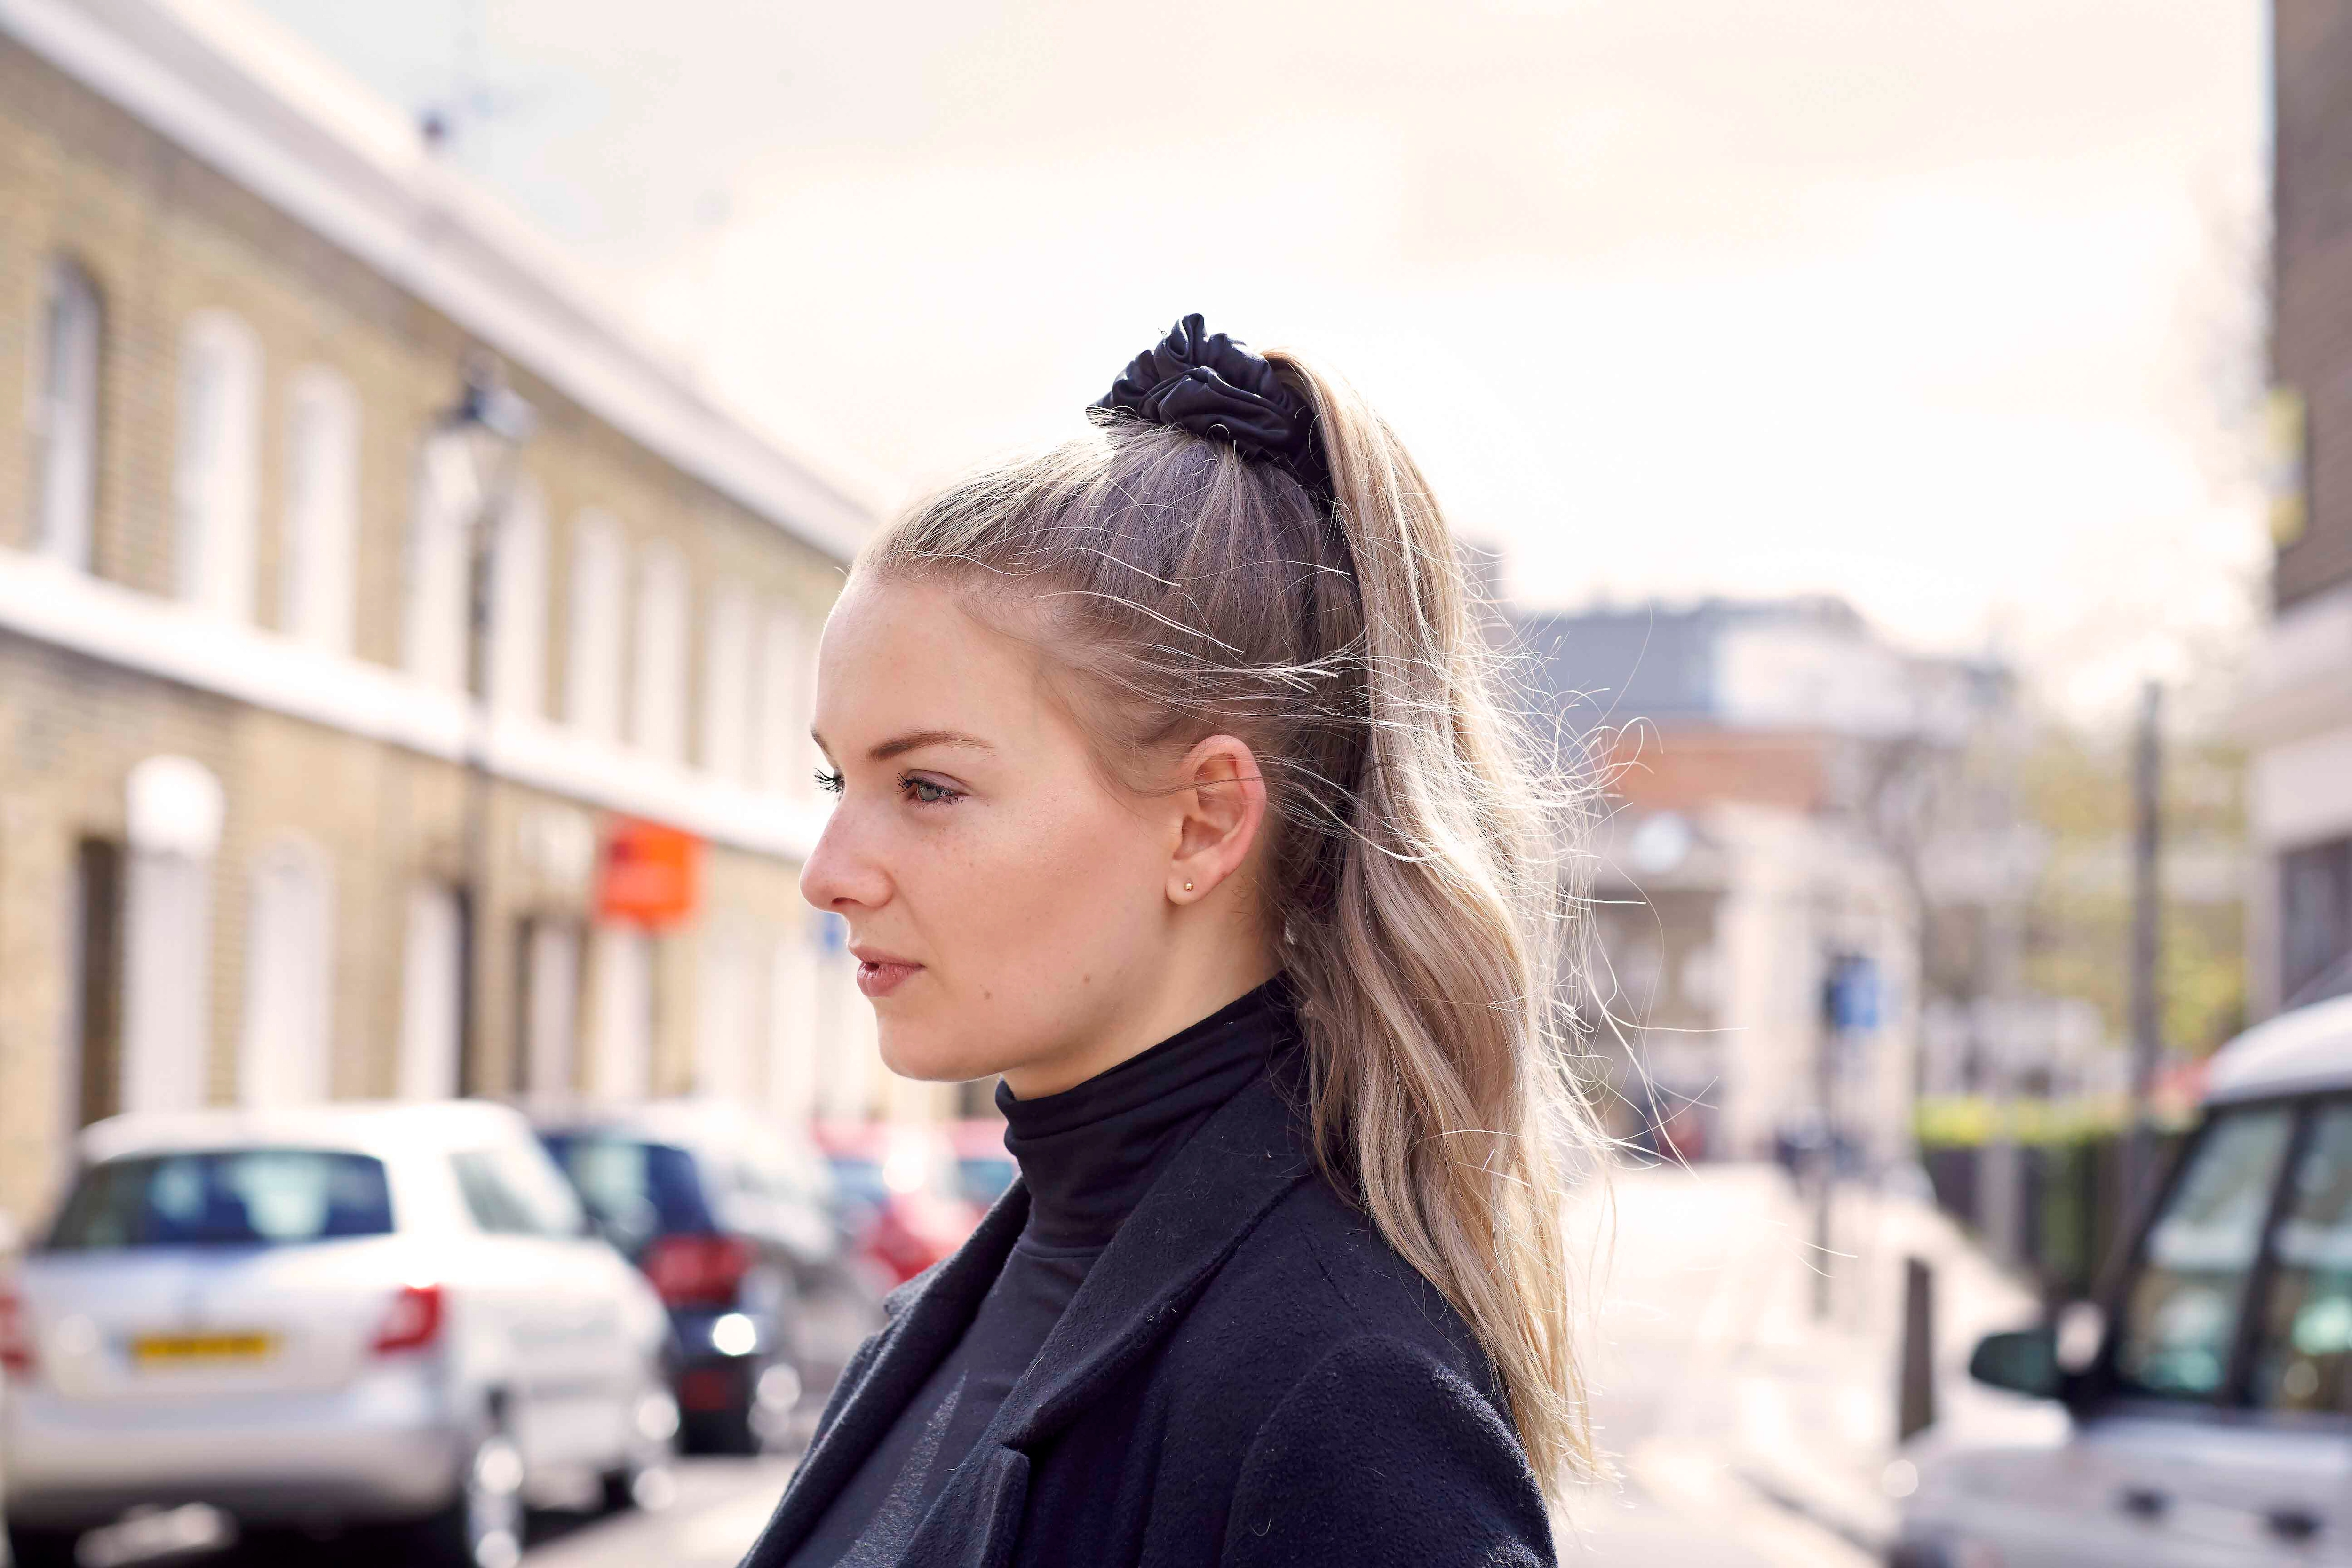 Scrunchie Hair Styles: 80s Hairstyles: Totally Tubular Trends We're Still Loving Now